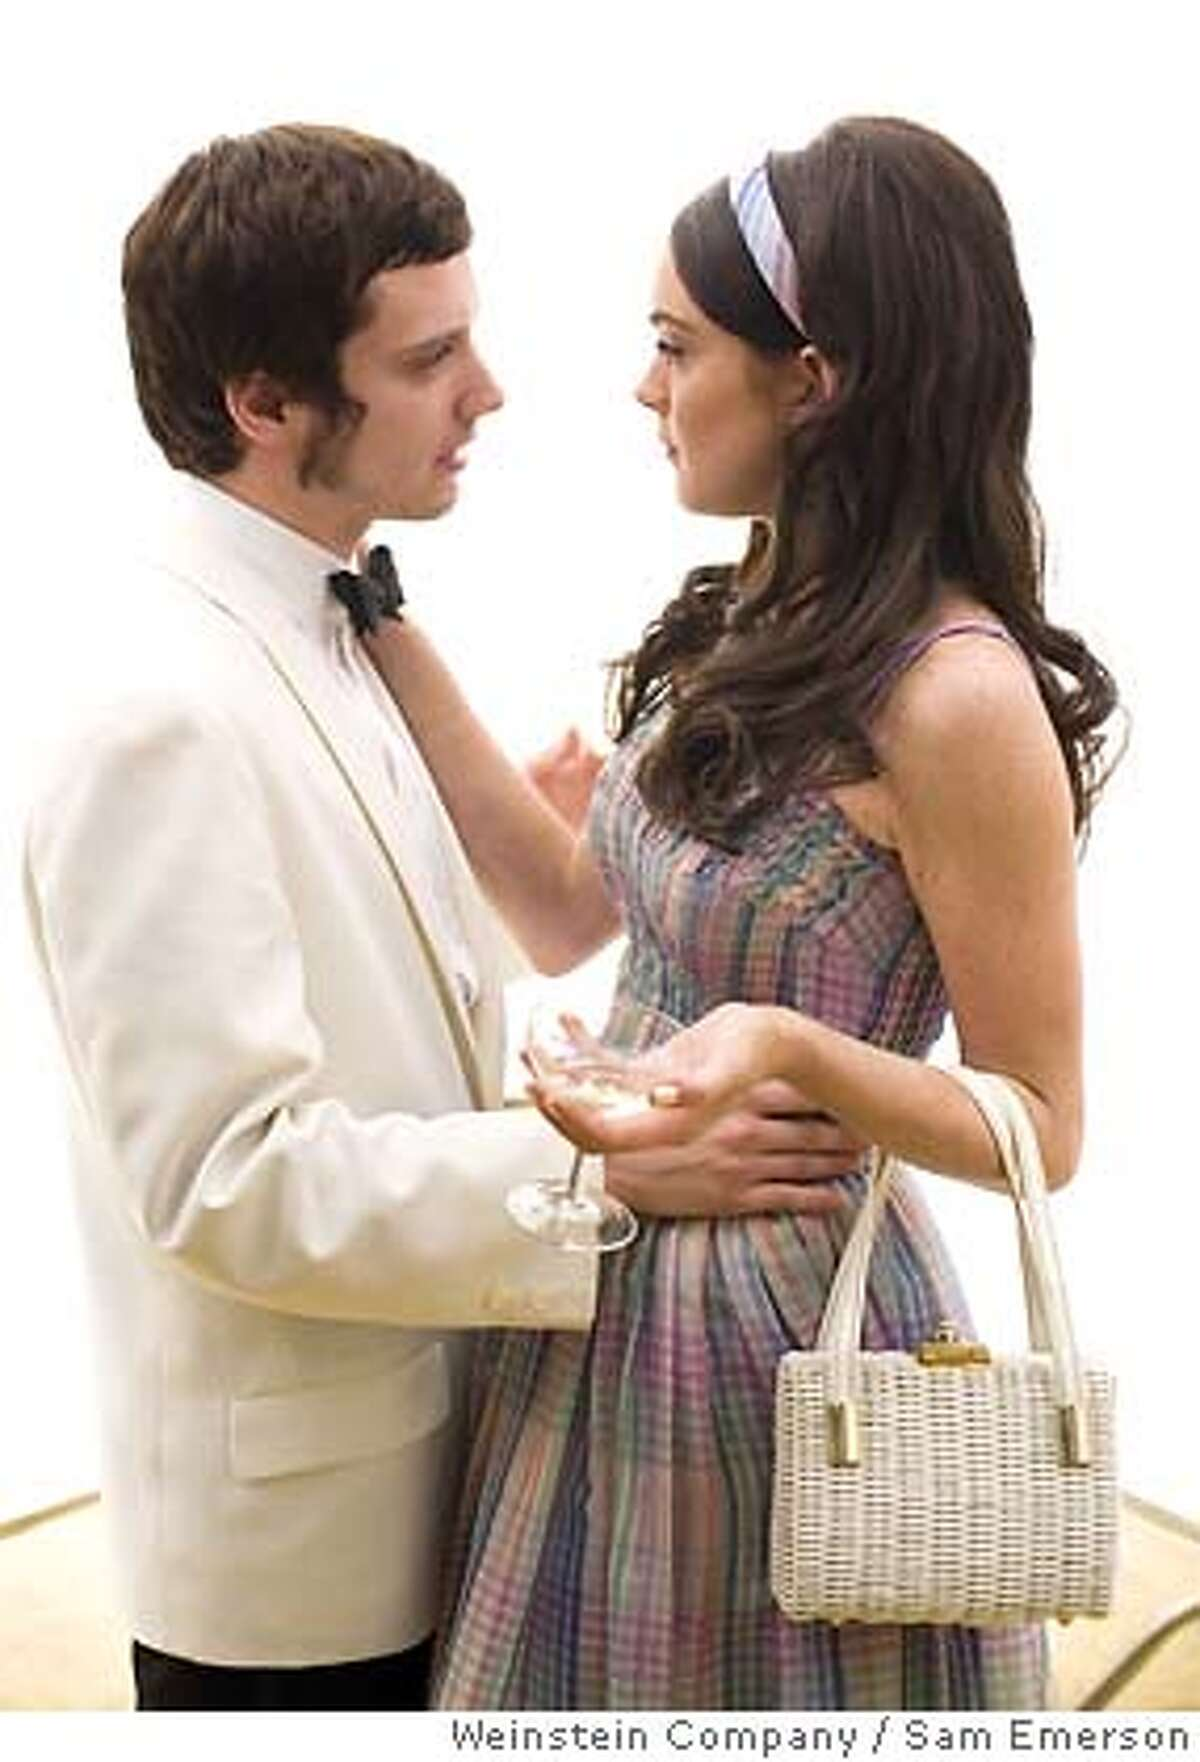 Photo Caption: Elijah Wood and Lindsay Lohan star in Emilio Estevez's BOBBY. Photo by: �The Weinstein Company, 2006/Sam Emerson Ran on: 11-23-2006 Fateful day: Heather Graham, Martin Sheen and Helen Hunt, above, and Elijah Wood and Lindsay Lohan, below, play characters whose stories intersect on June 4, 1968, the day Robert F. Kennedy was assassinated.